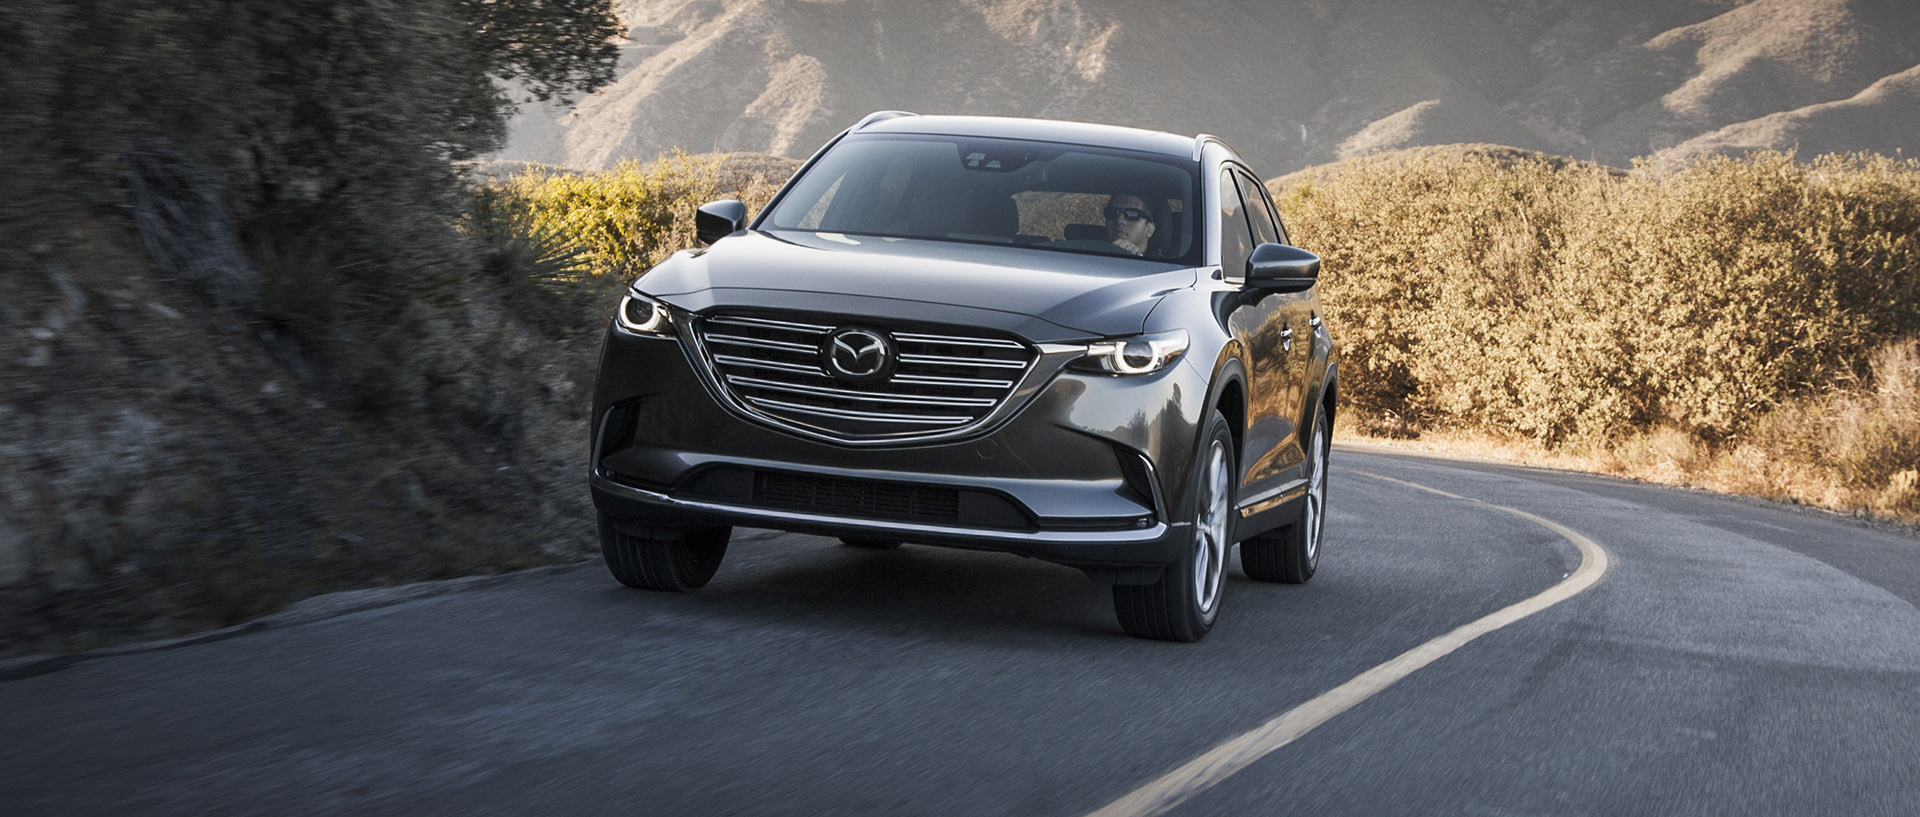 Driving The Turbocharged 2017 Mazda Cx 9 Consumer Reports 6 Fuel Filter Replacement